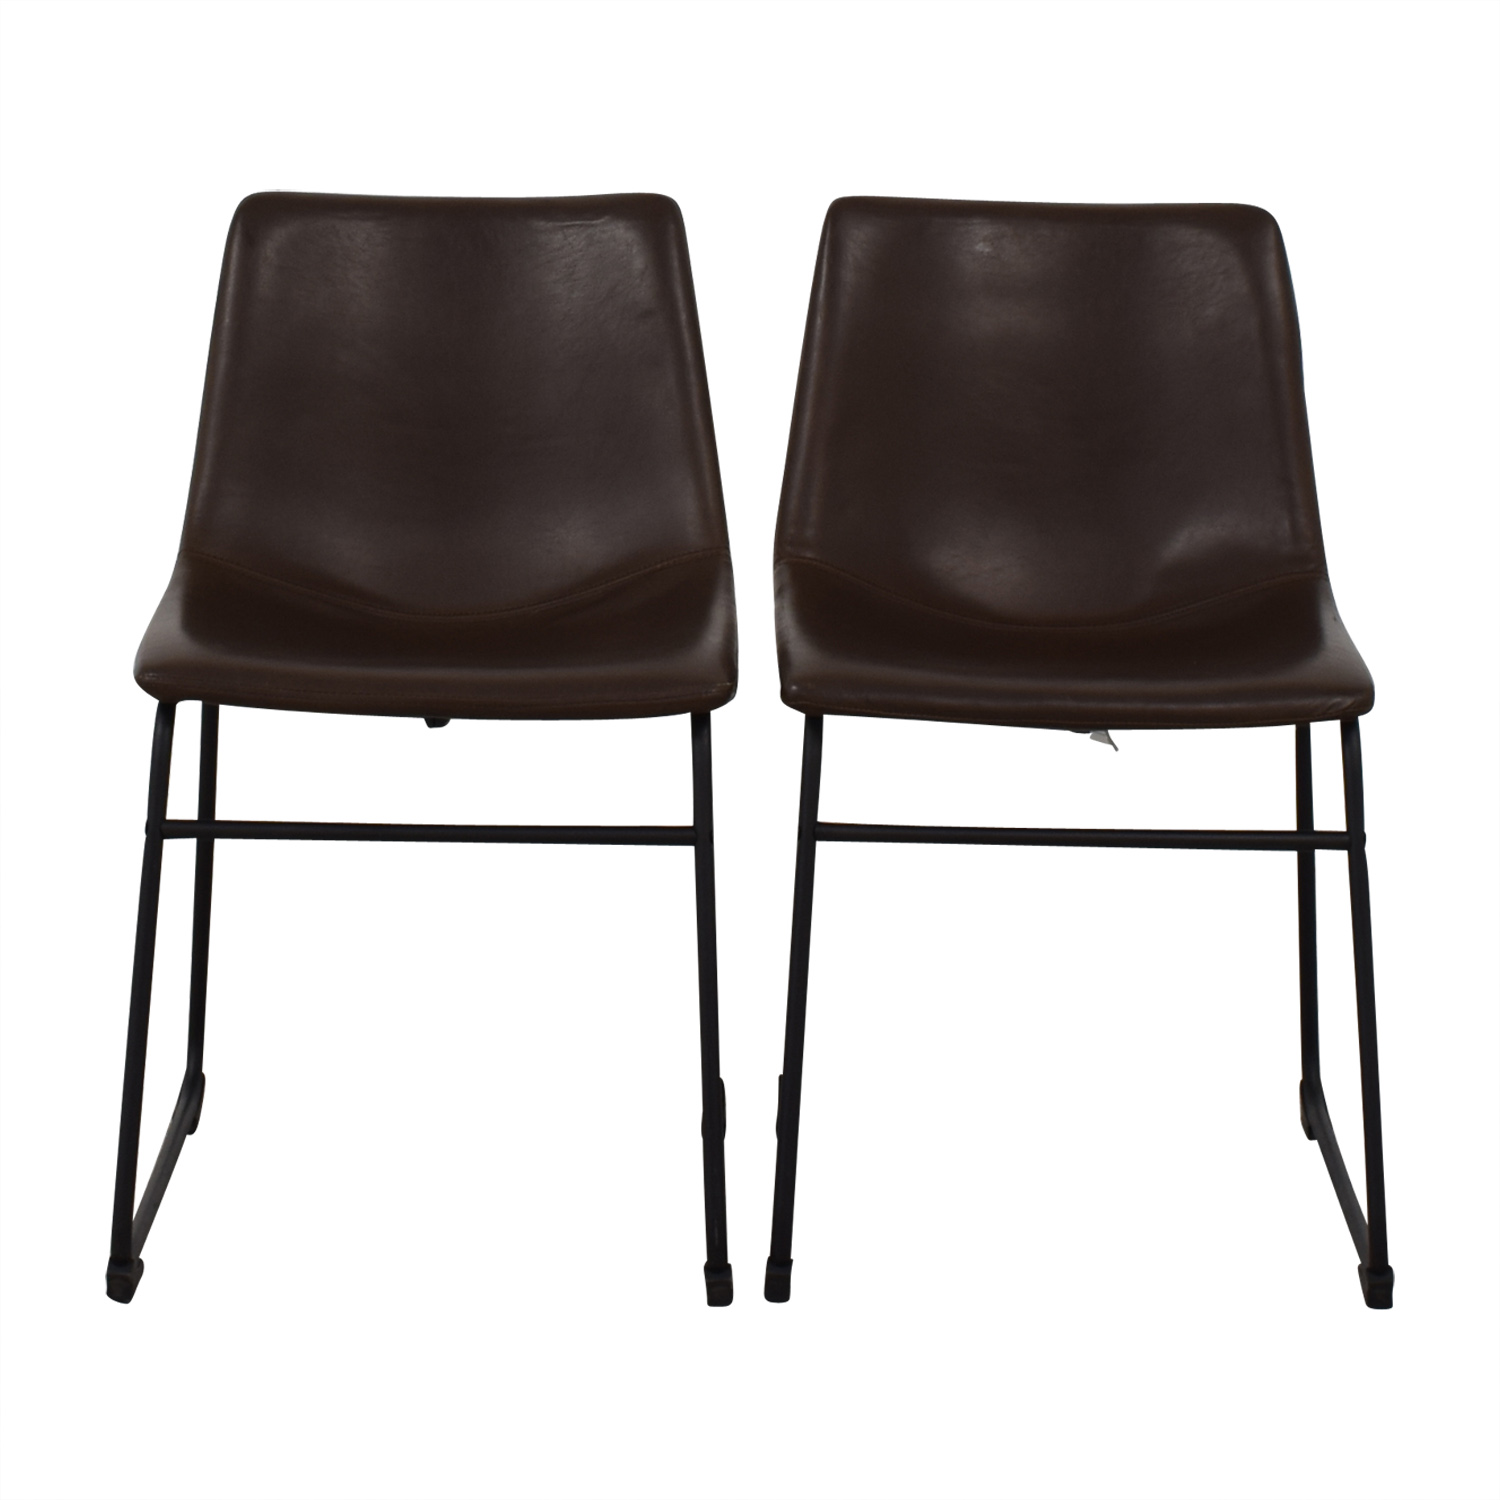 buy Walker Edison Industrial Faux Leather Dining Chairs Walker Edison